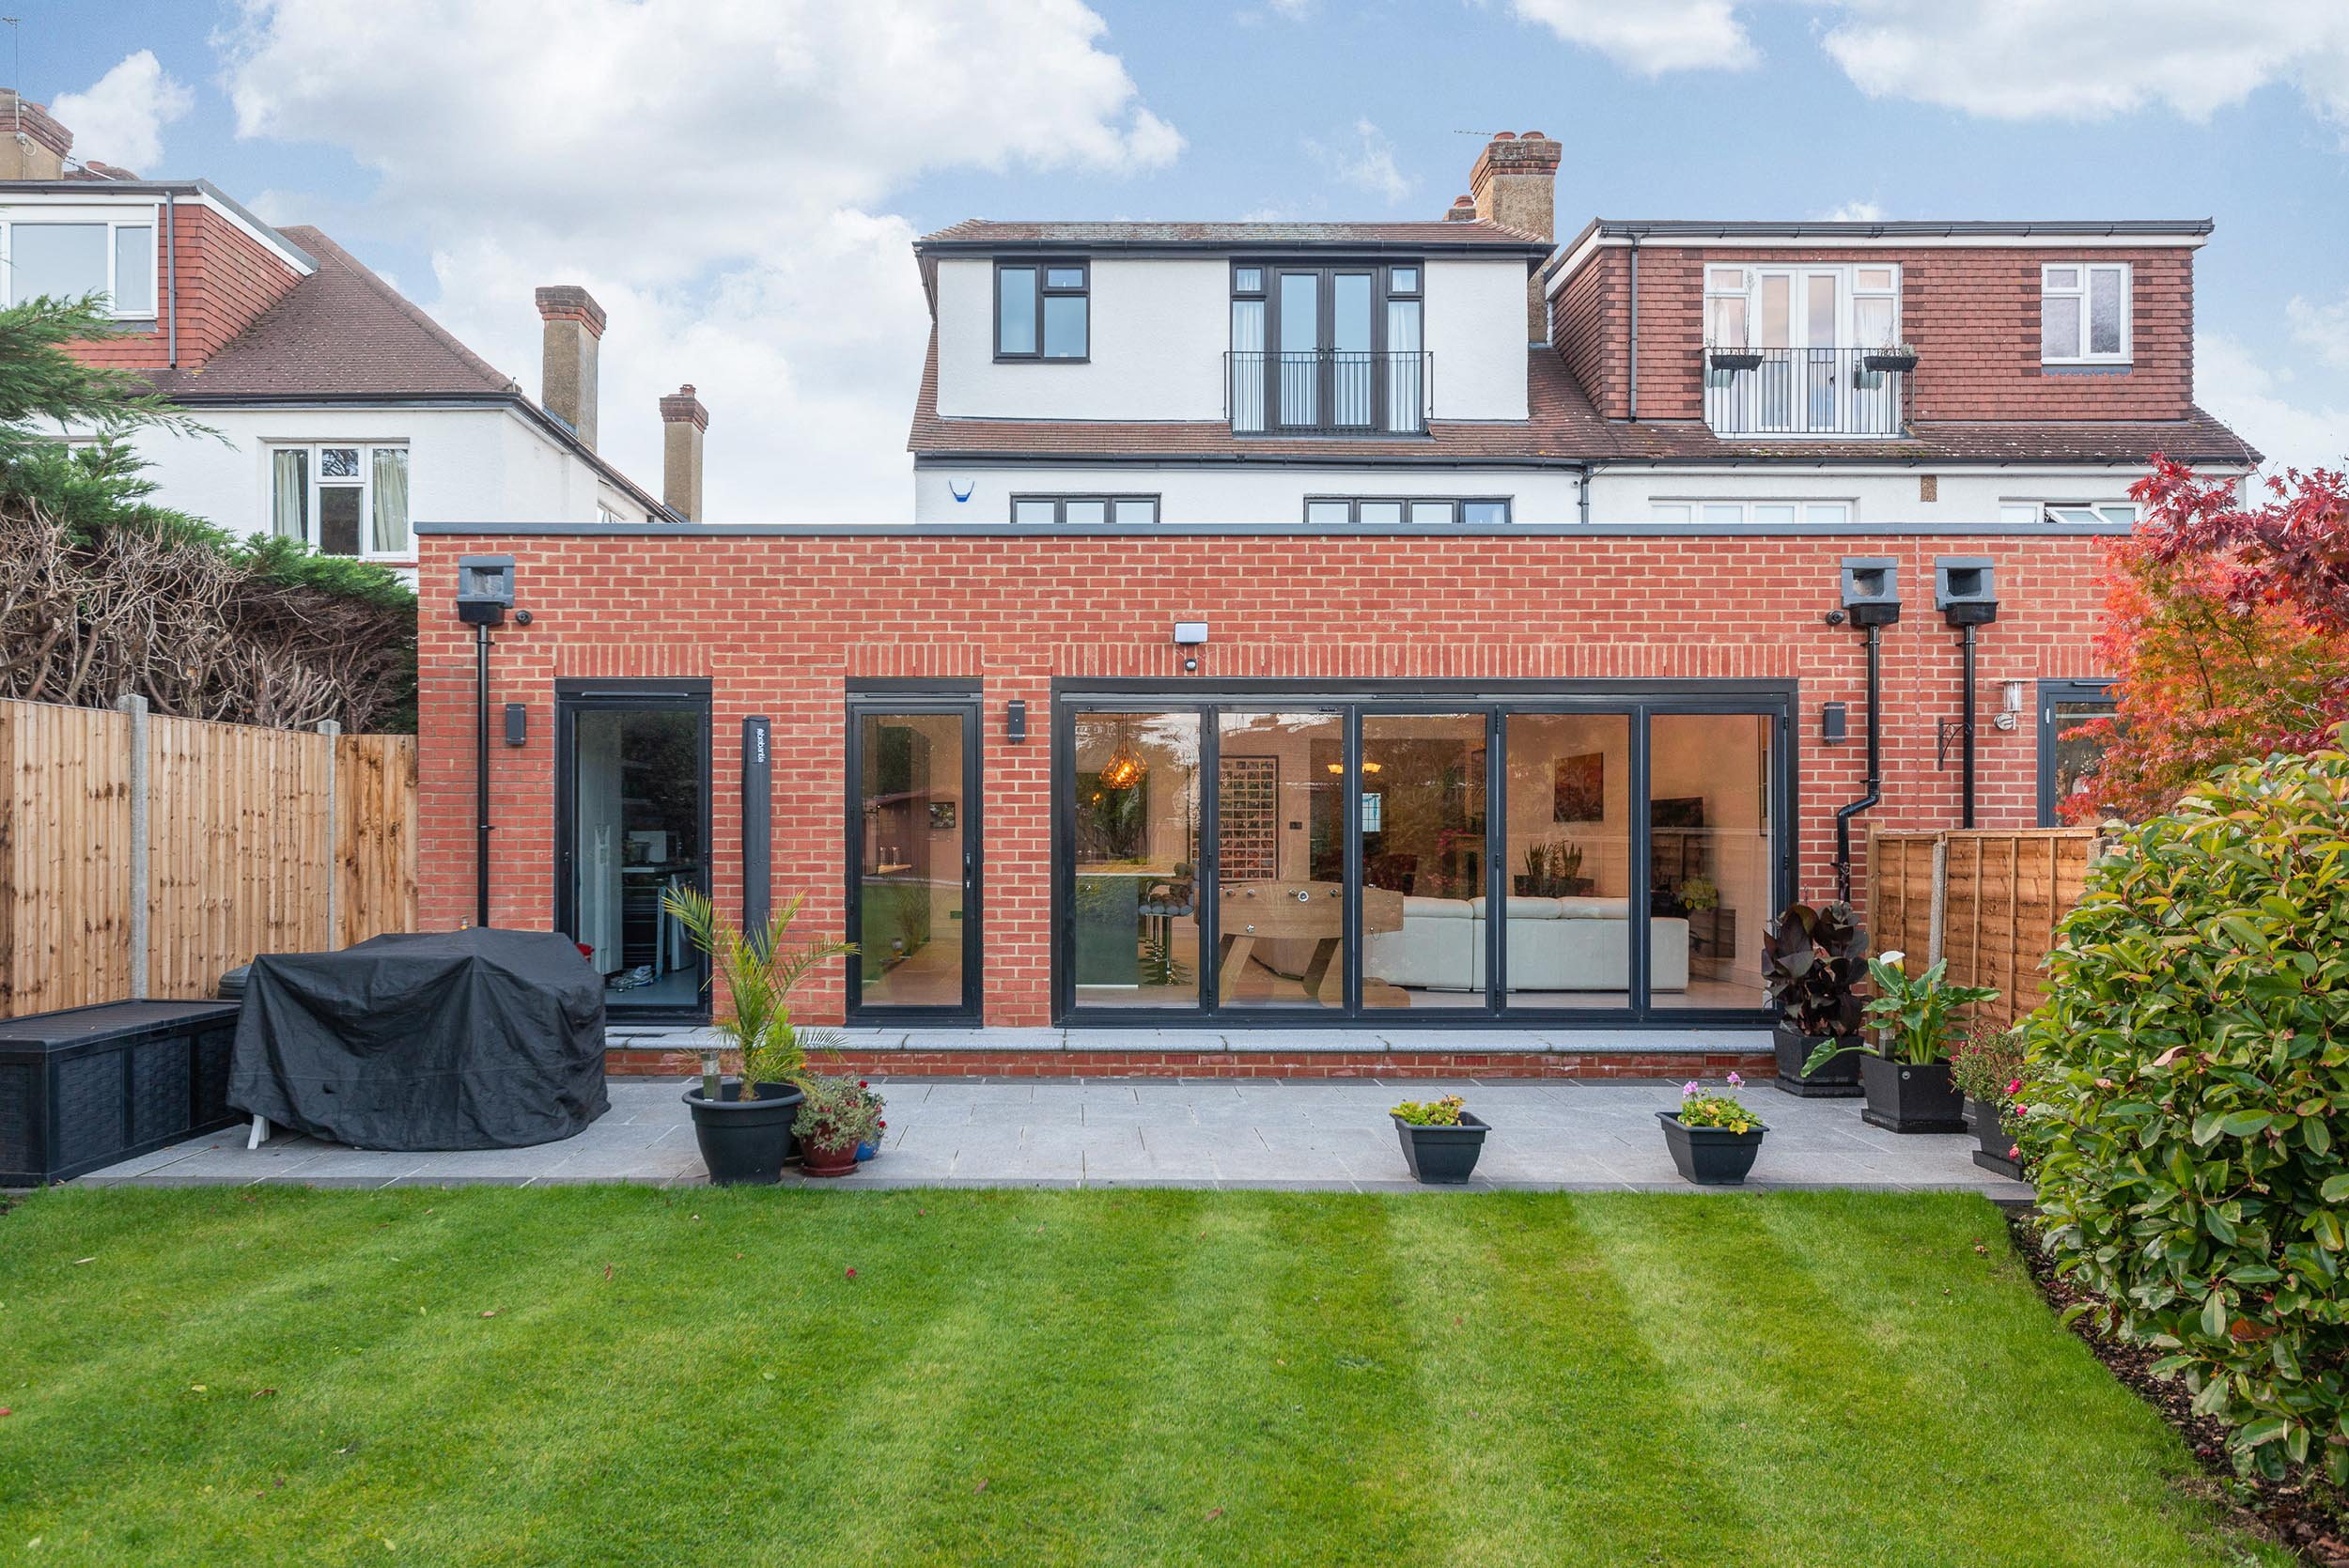 61-and-63-Wades-Hill-N21-1BD-Small-Res-19